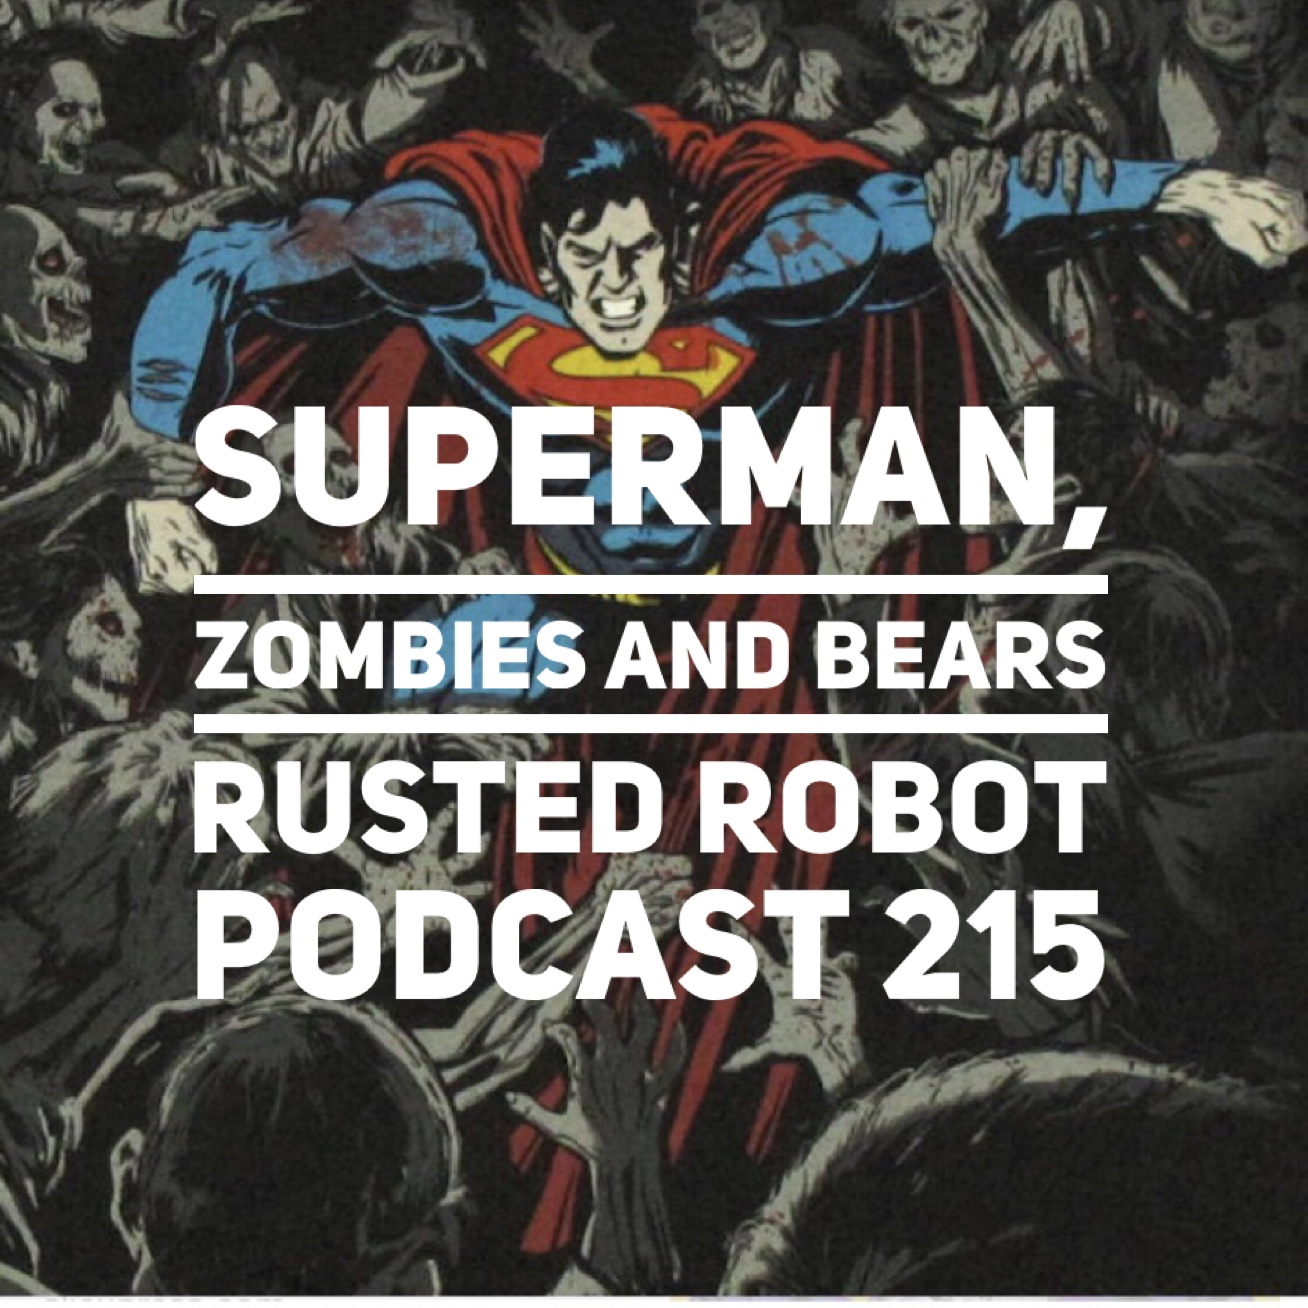 215: Superman, Zombies and Bears